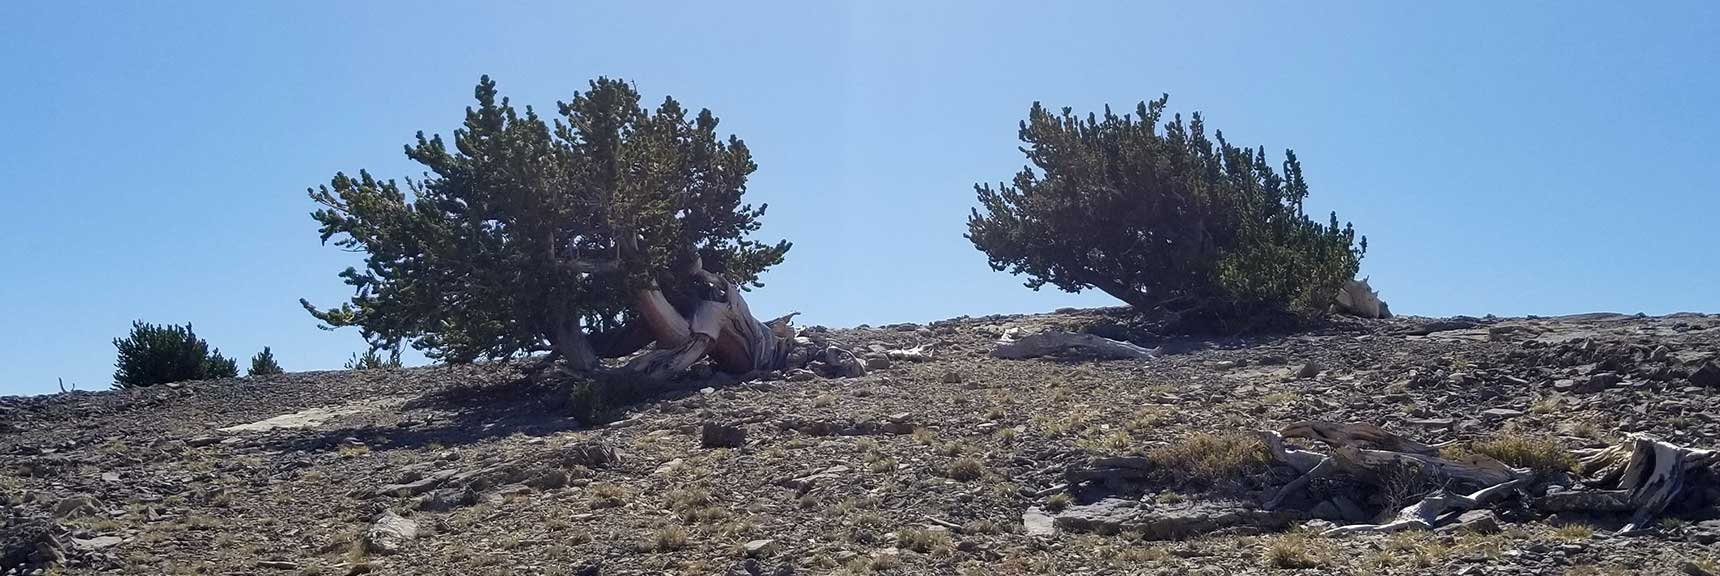 Sculpted Bristlecone Pines on the Northern End of Mummy Mt, Nevada